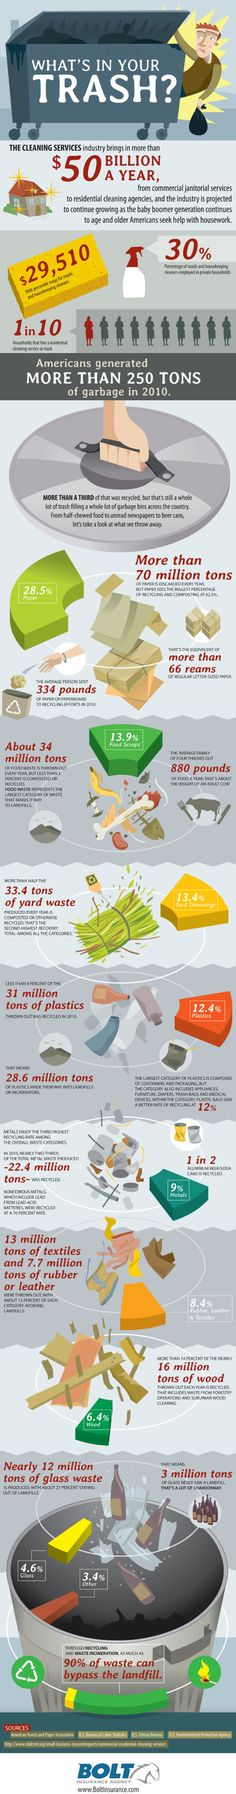 WHAT'S IN YOUR TRASH? - http://www.coolinfoimages.com/infographics/whats-in-your-trash/